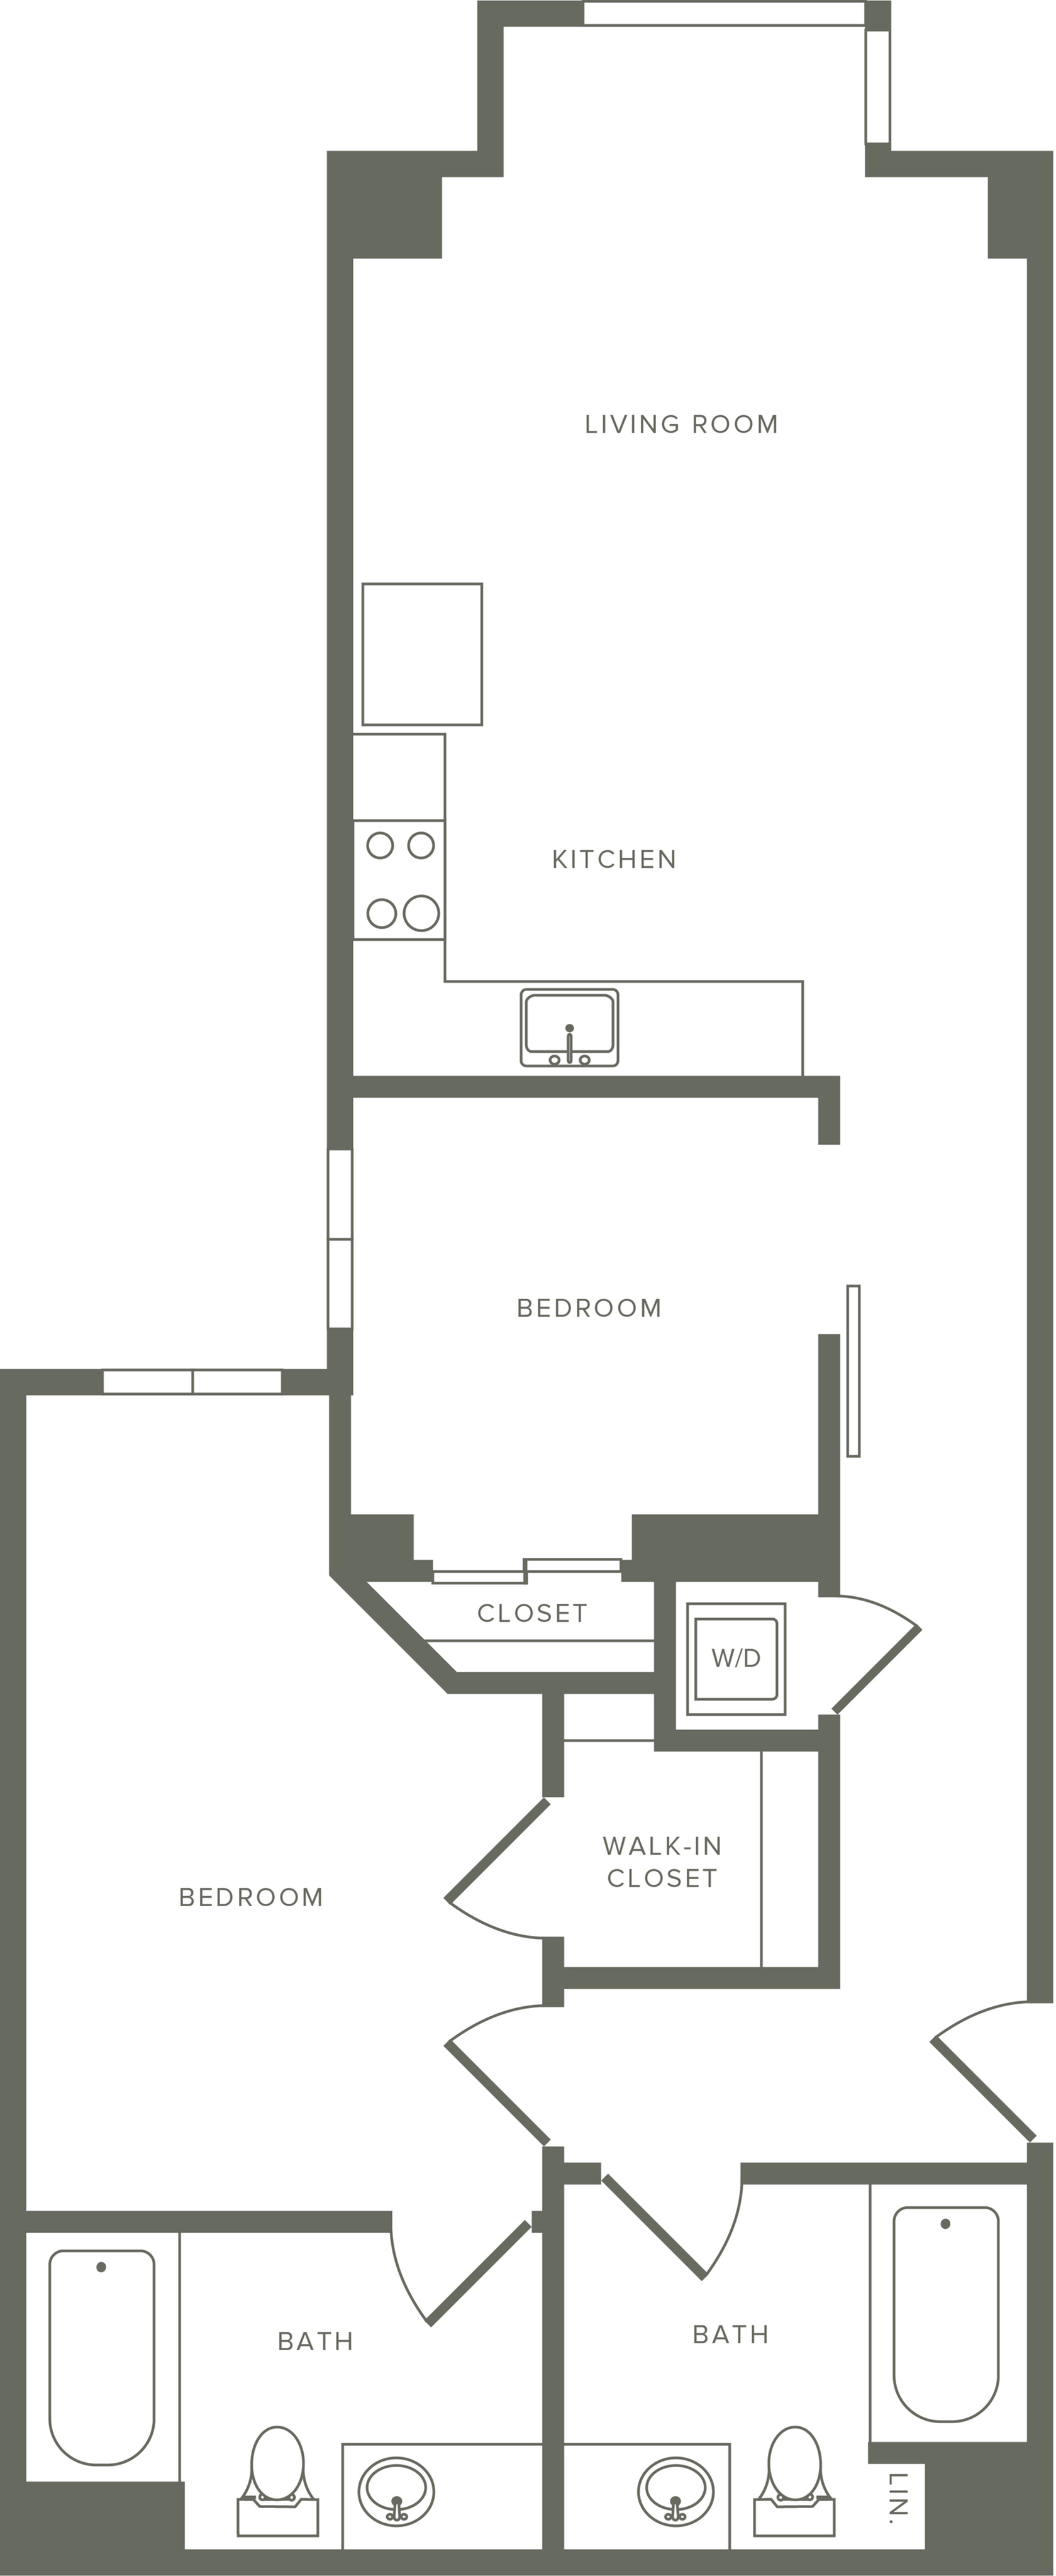 957-960 square foot two bedroom two bath apartment floorplan image